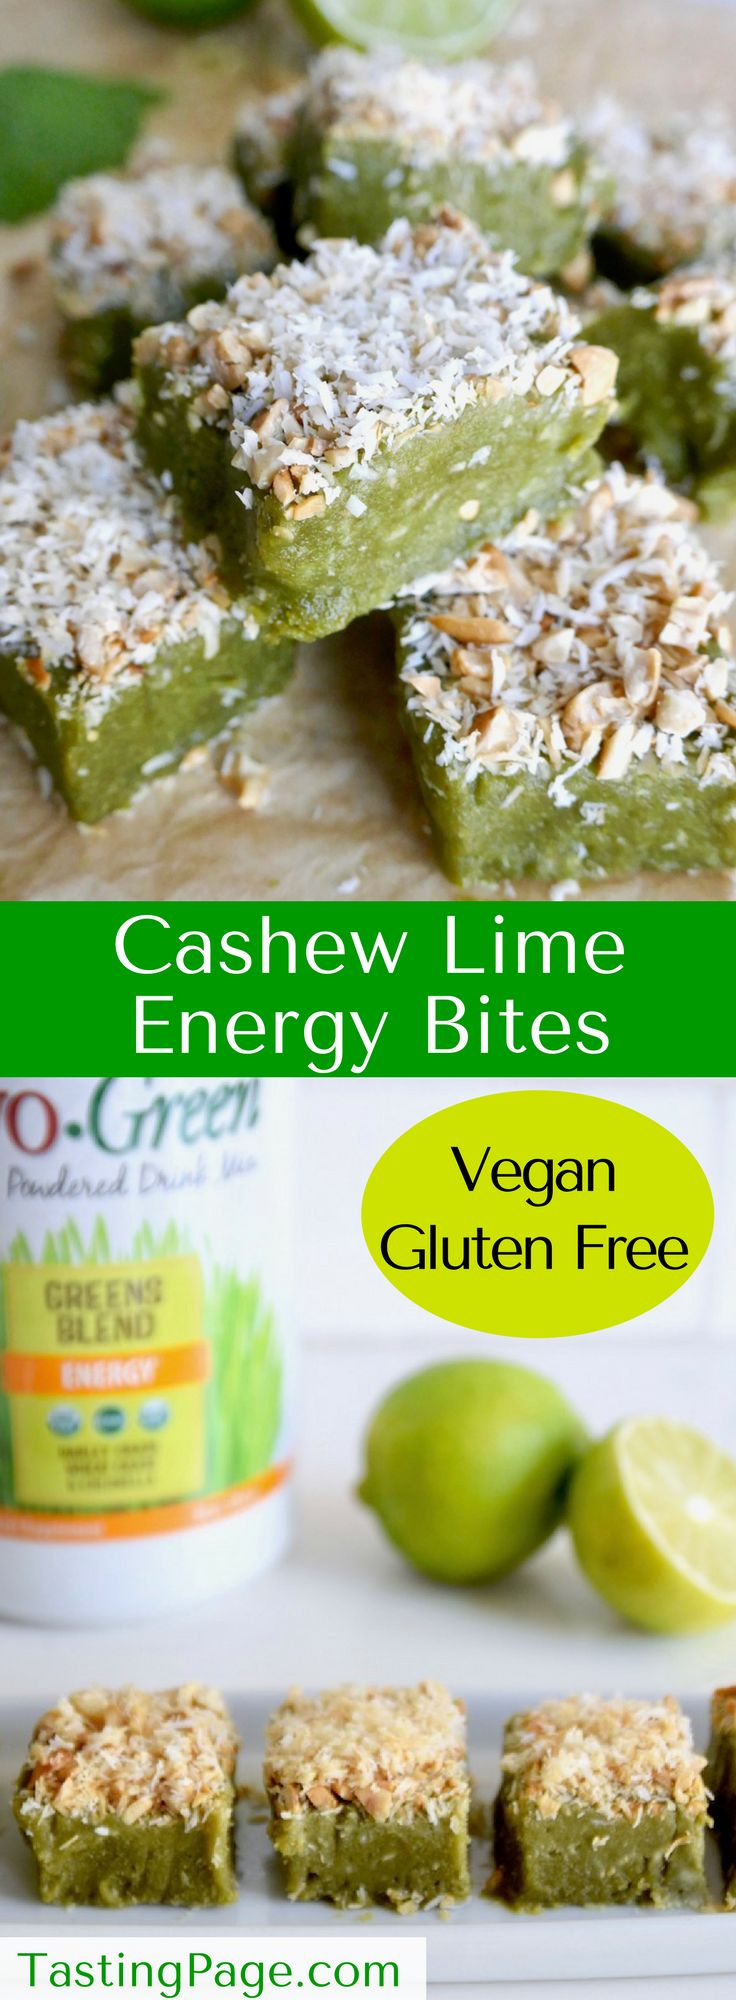 No bake cashew lime green energy bites - gluten free, dairy free, vegan and free from refined sugar | TastingPage.com